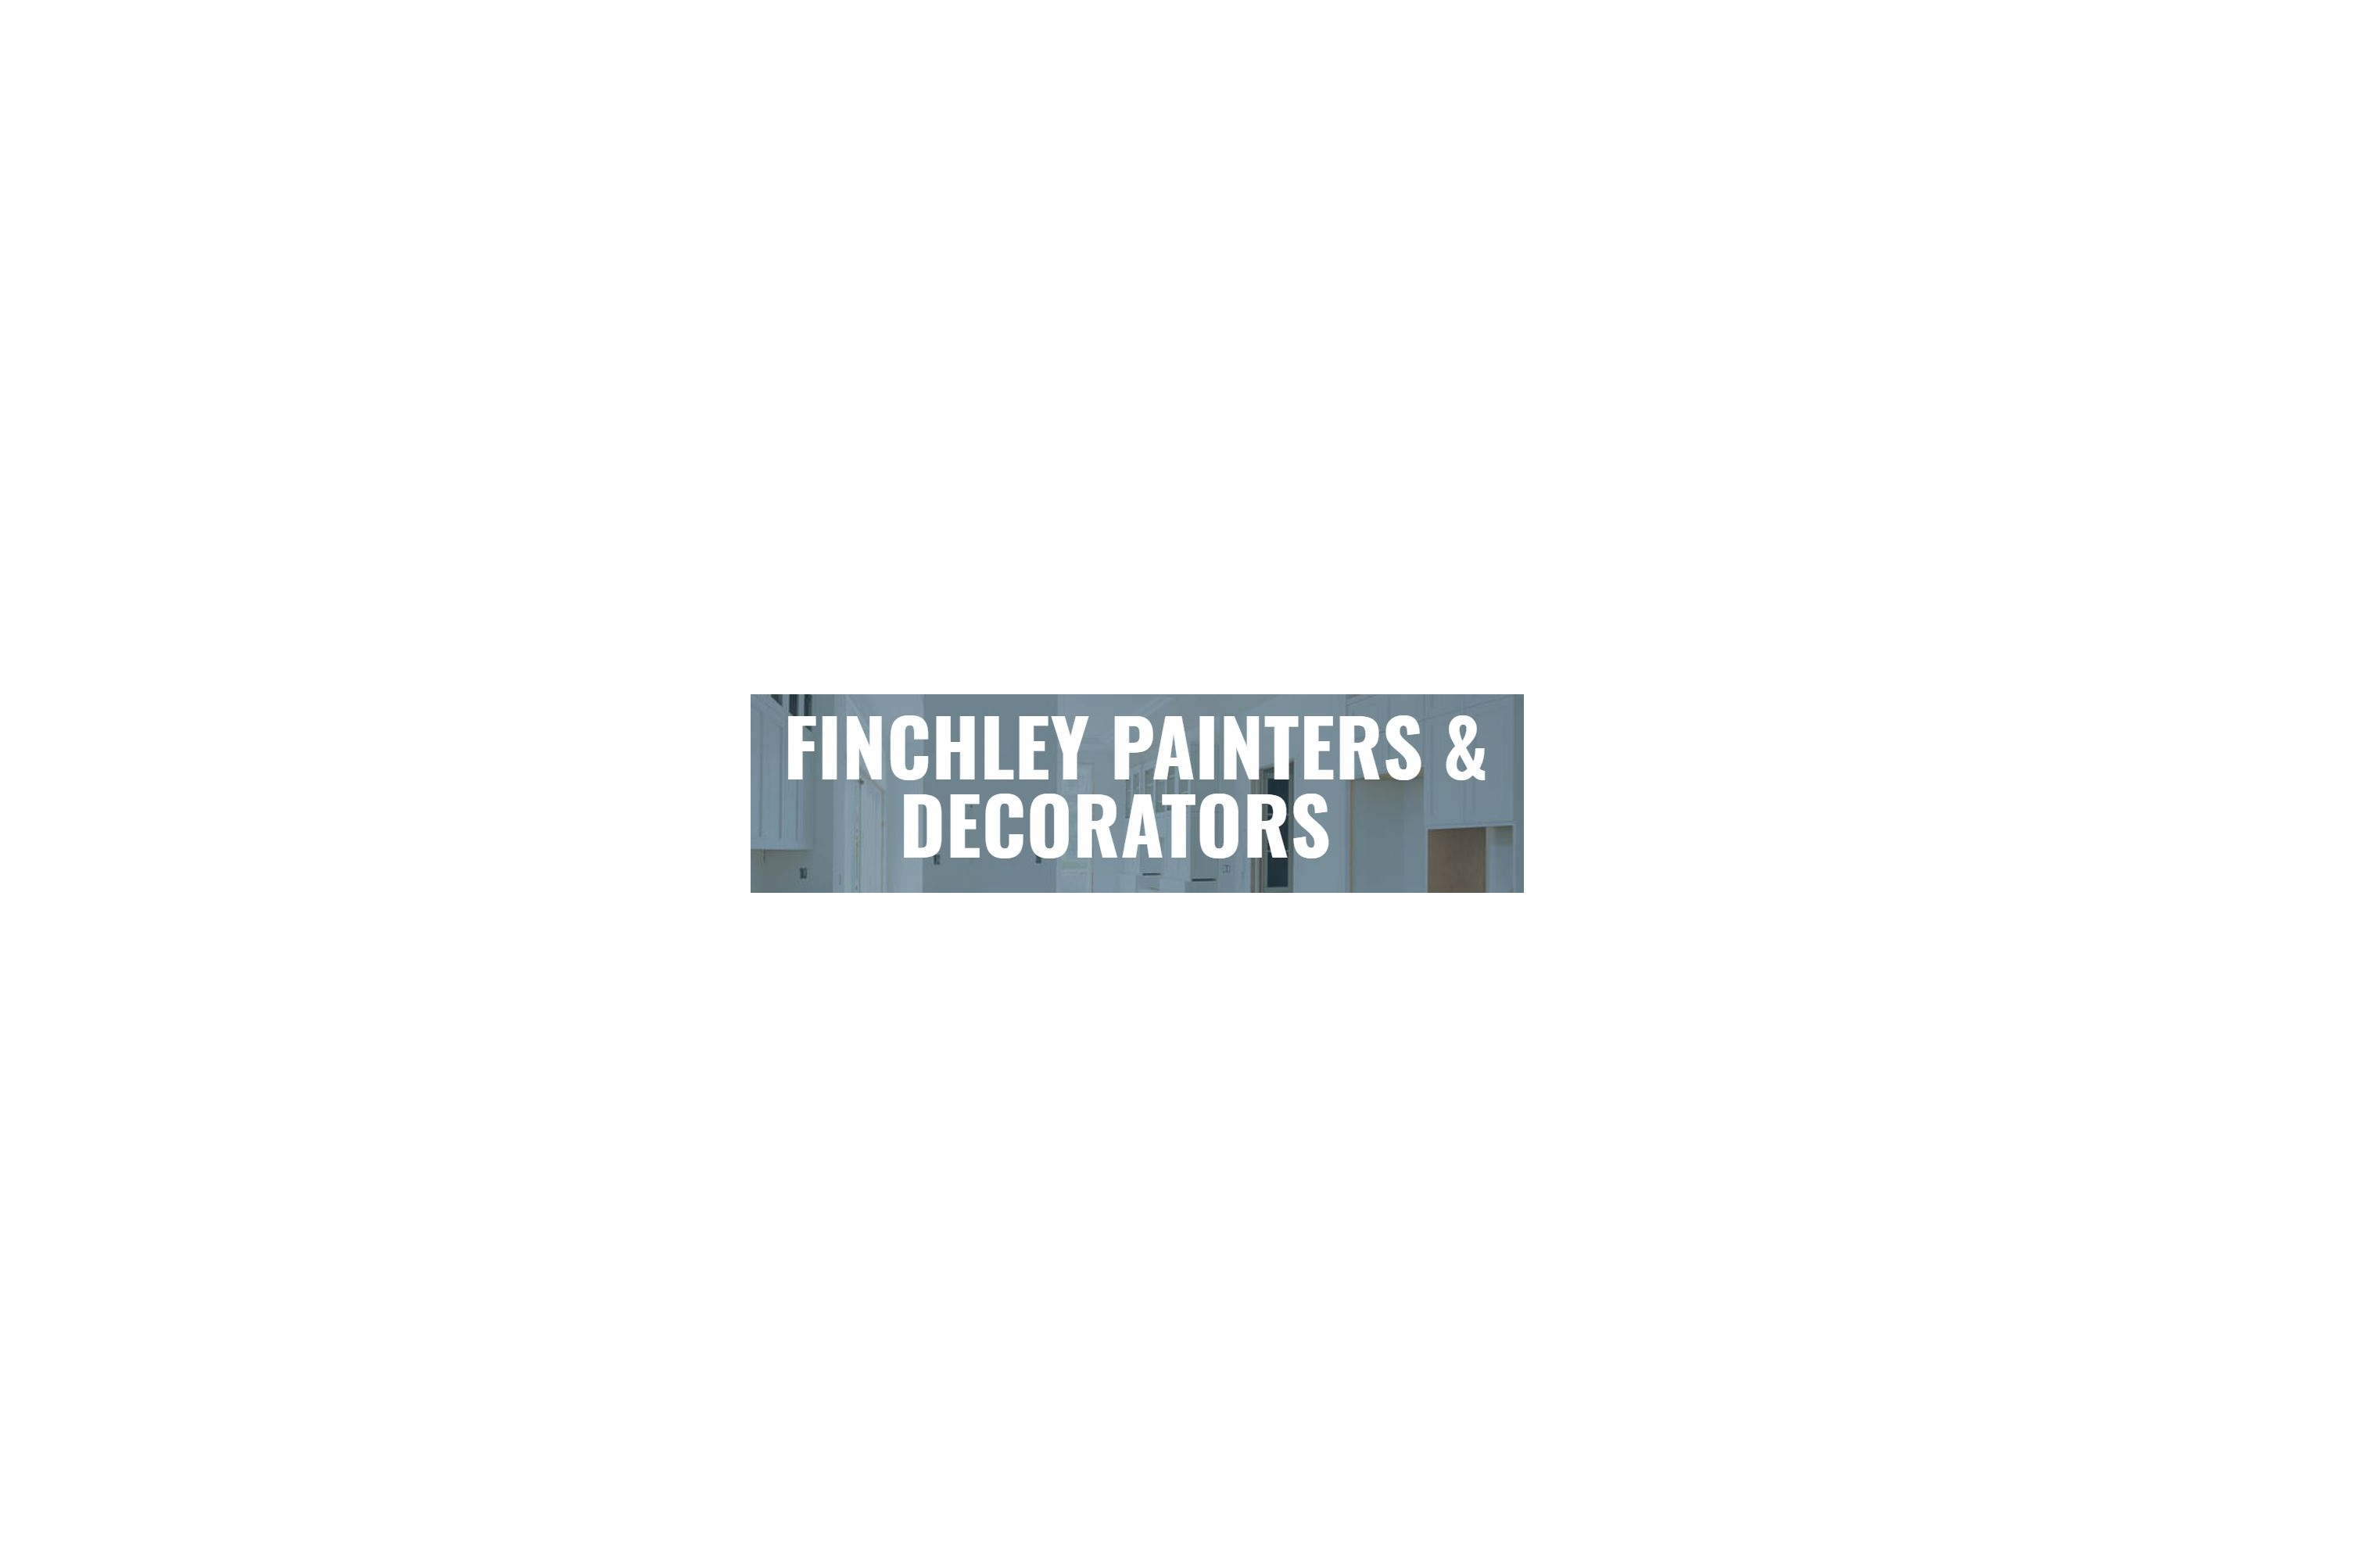 Finchley Painters and Decorators